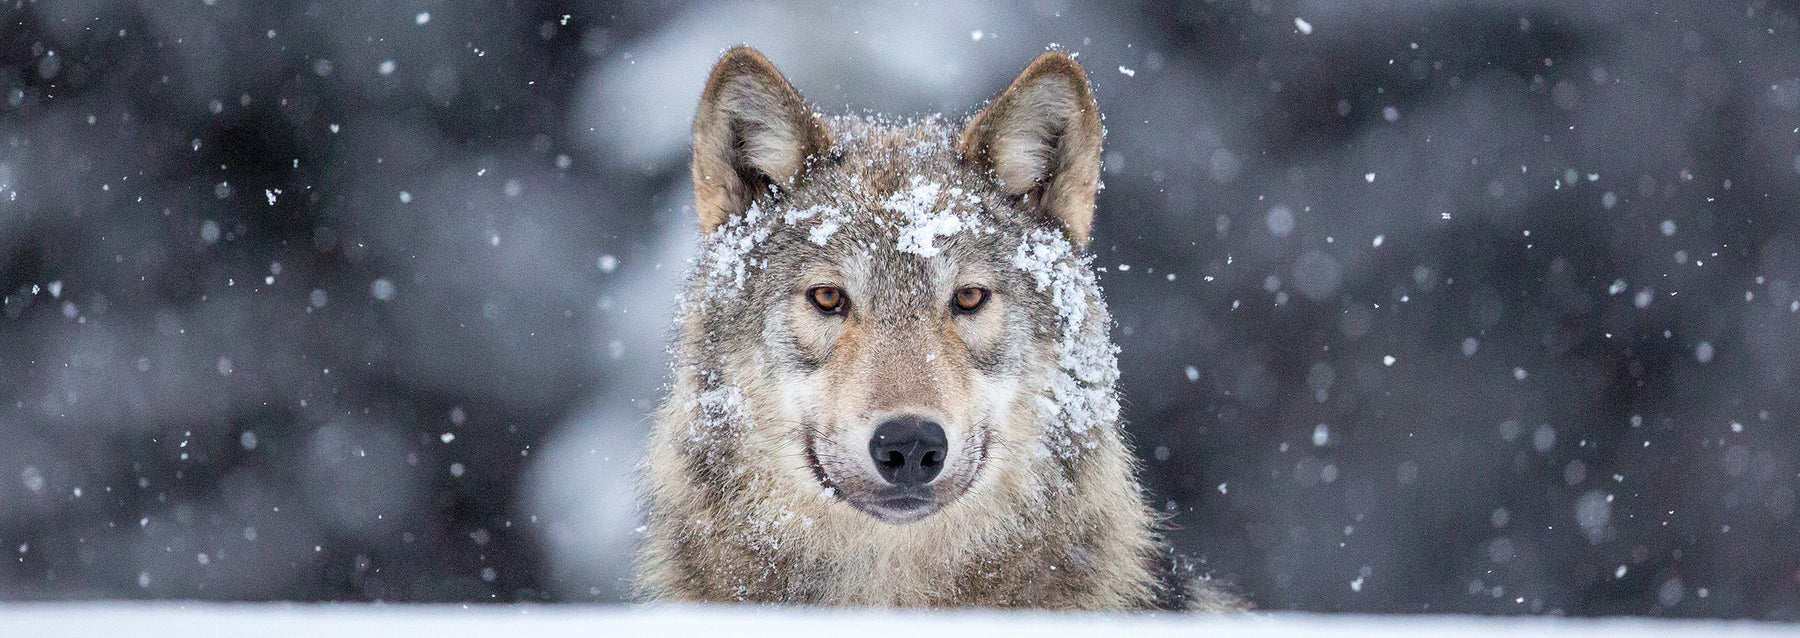 Wild wolf photography - John E. Marriott